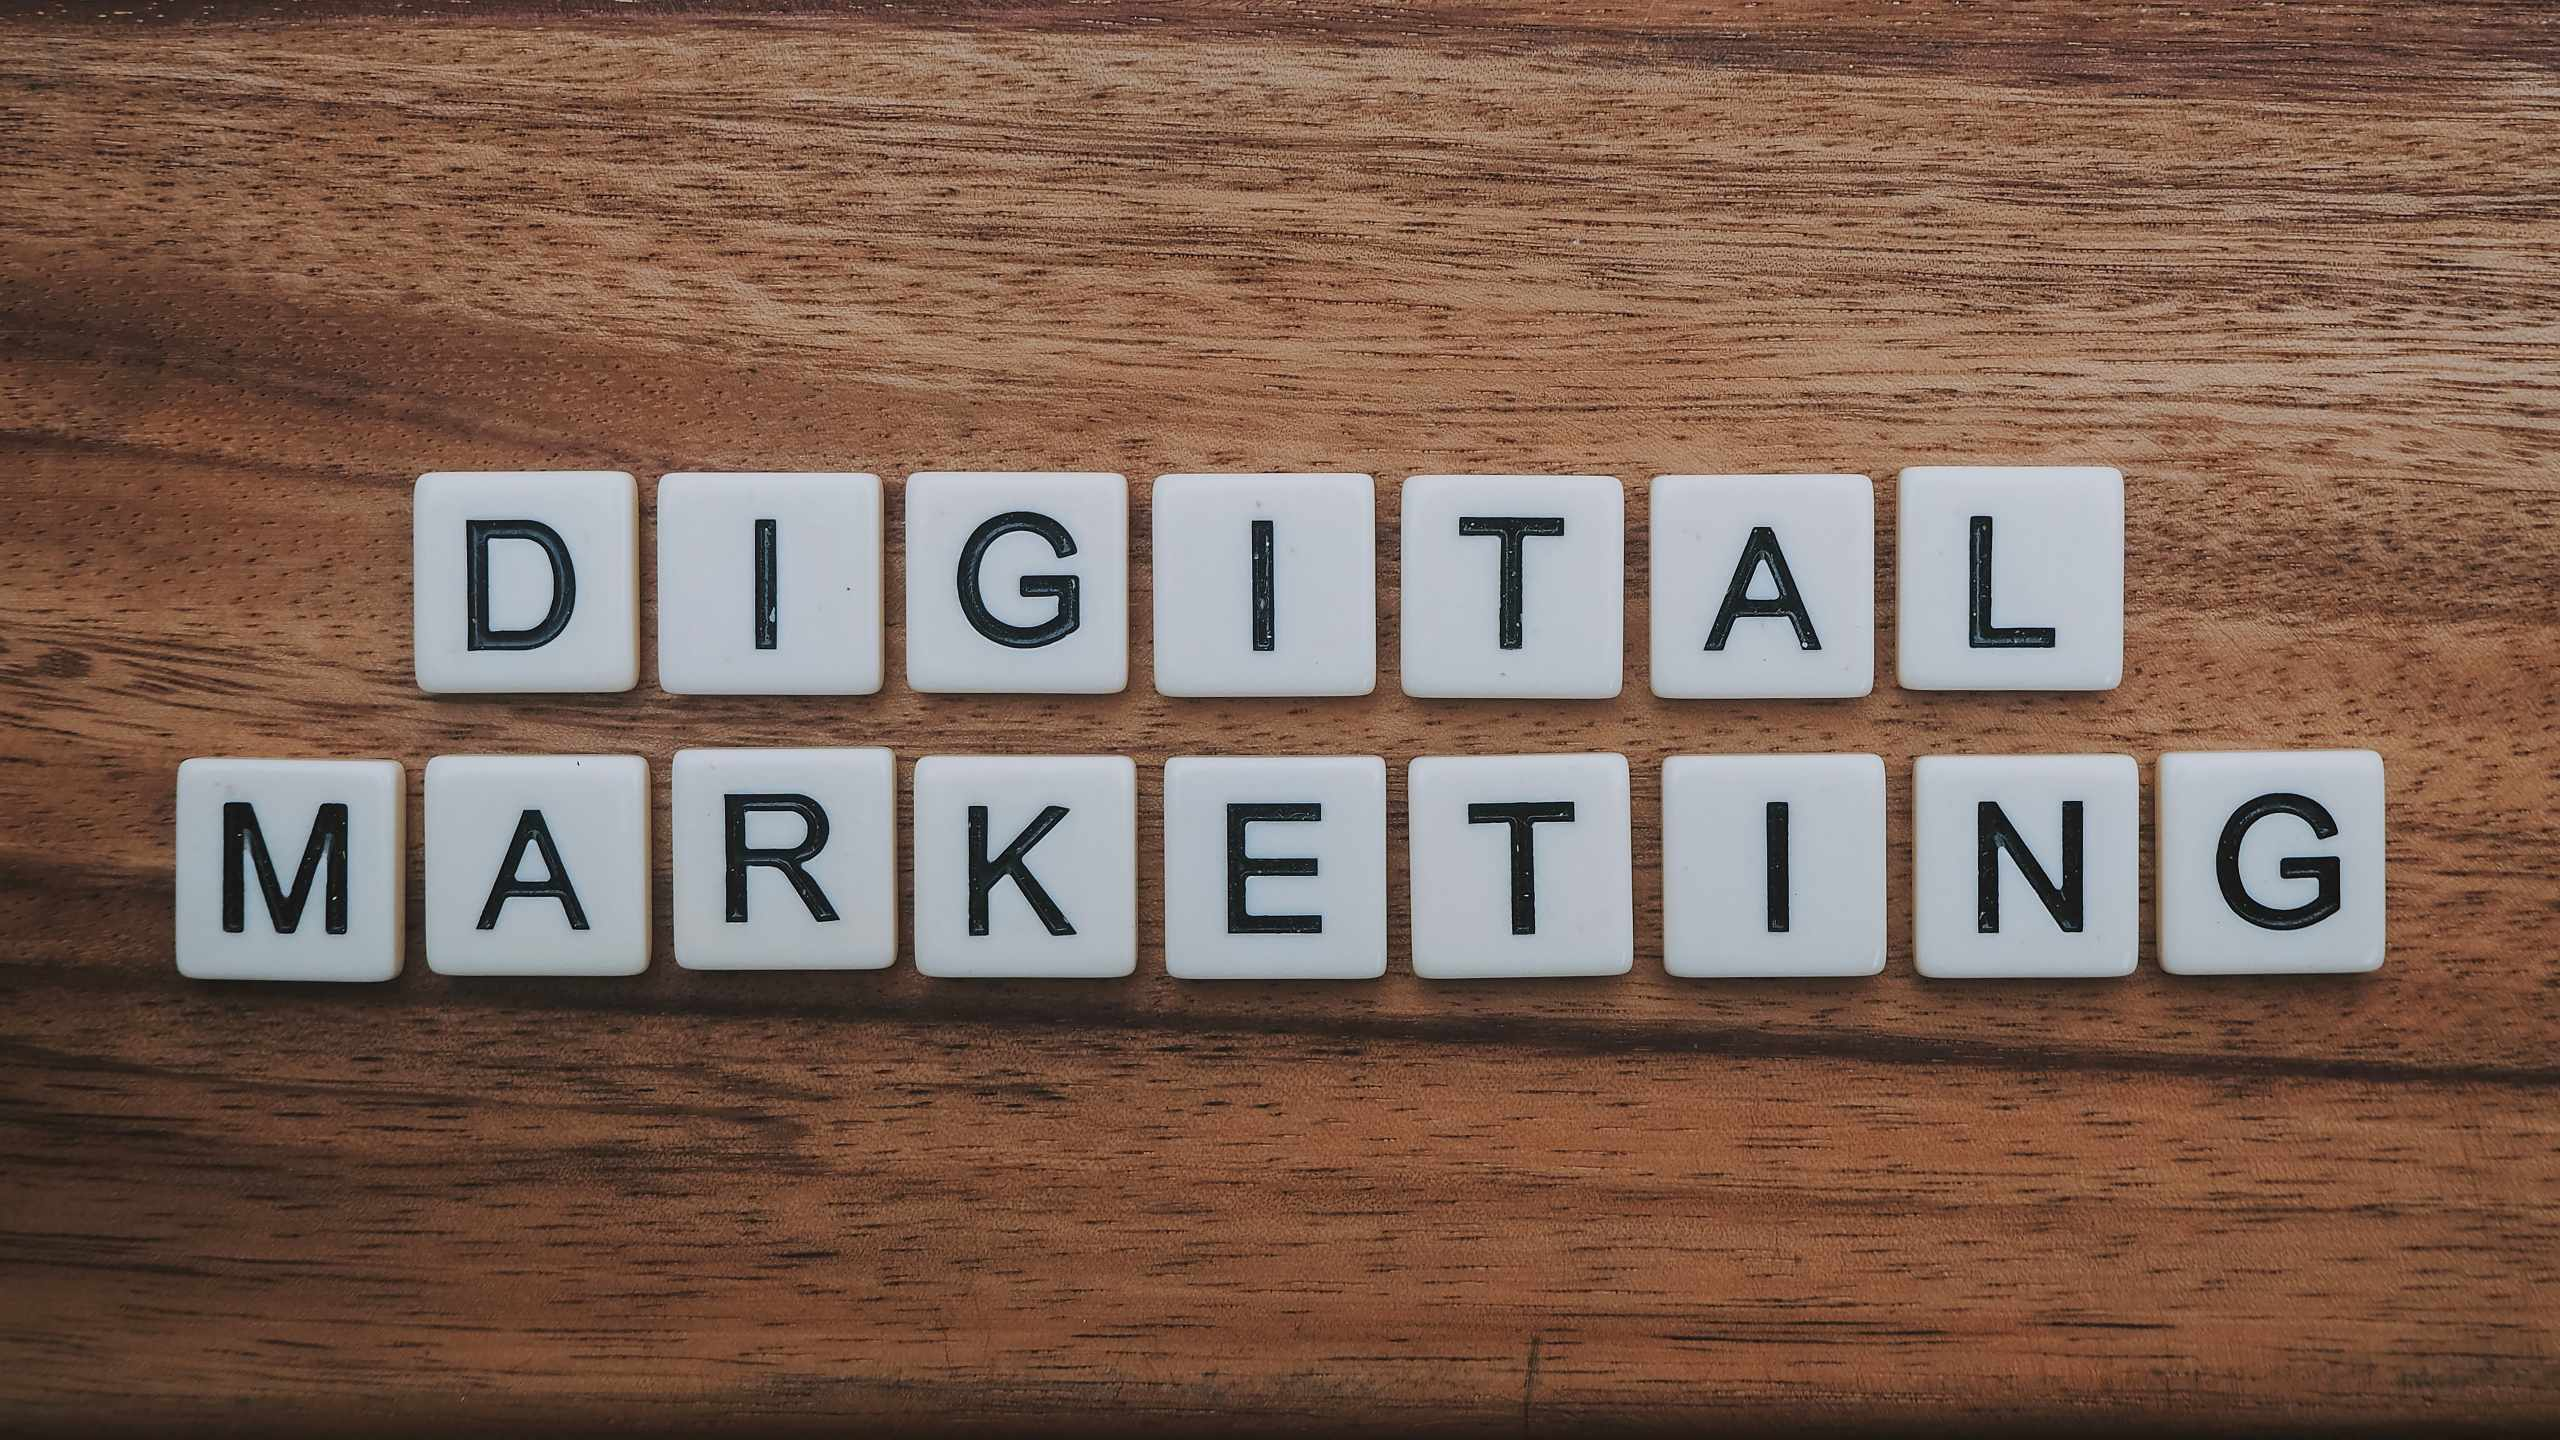 To Get The Right Results, You Need Digital Marketing.